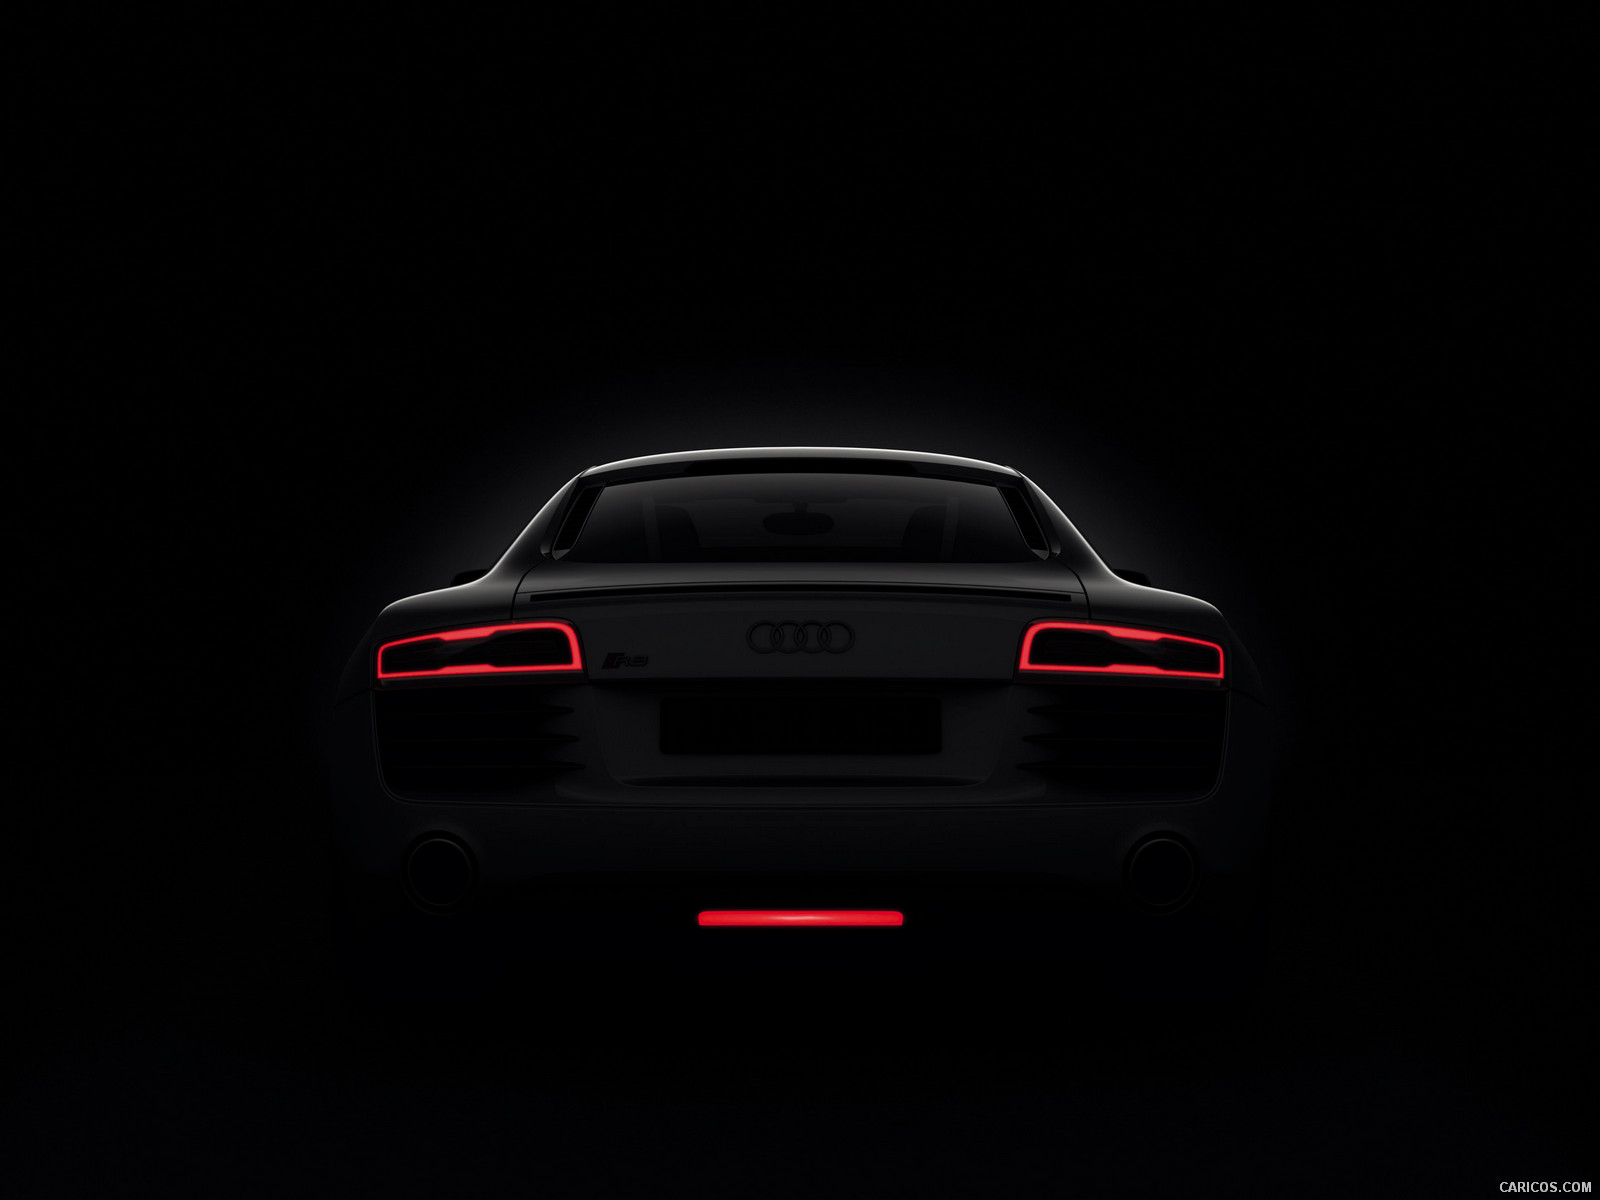 Tail Lights Wallpaper HD